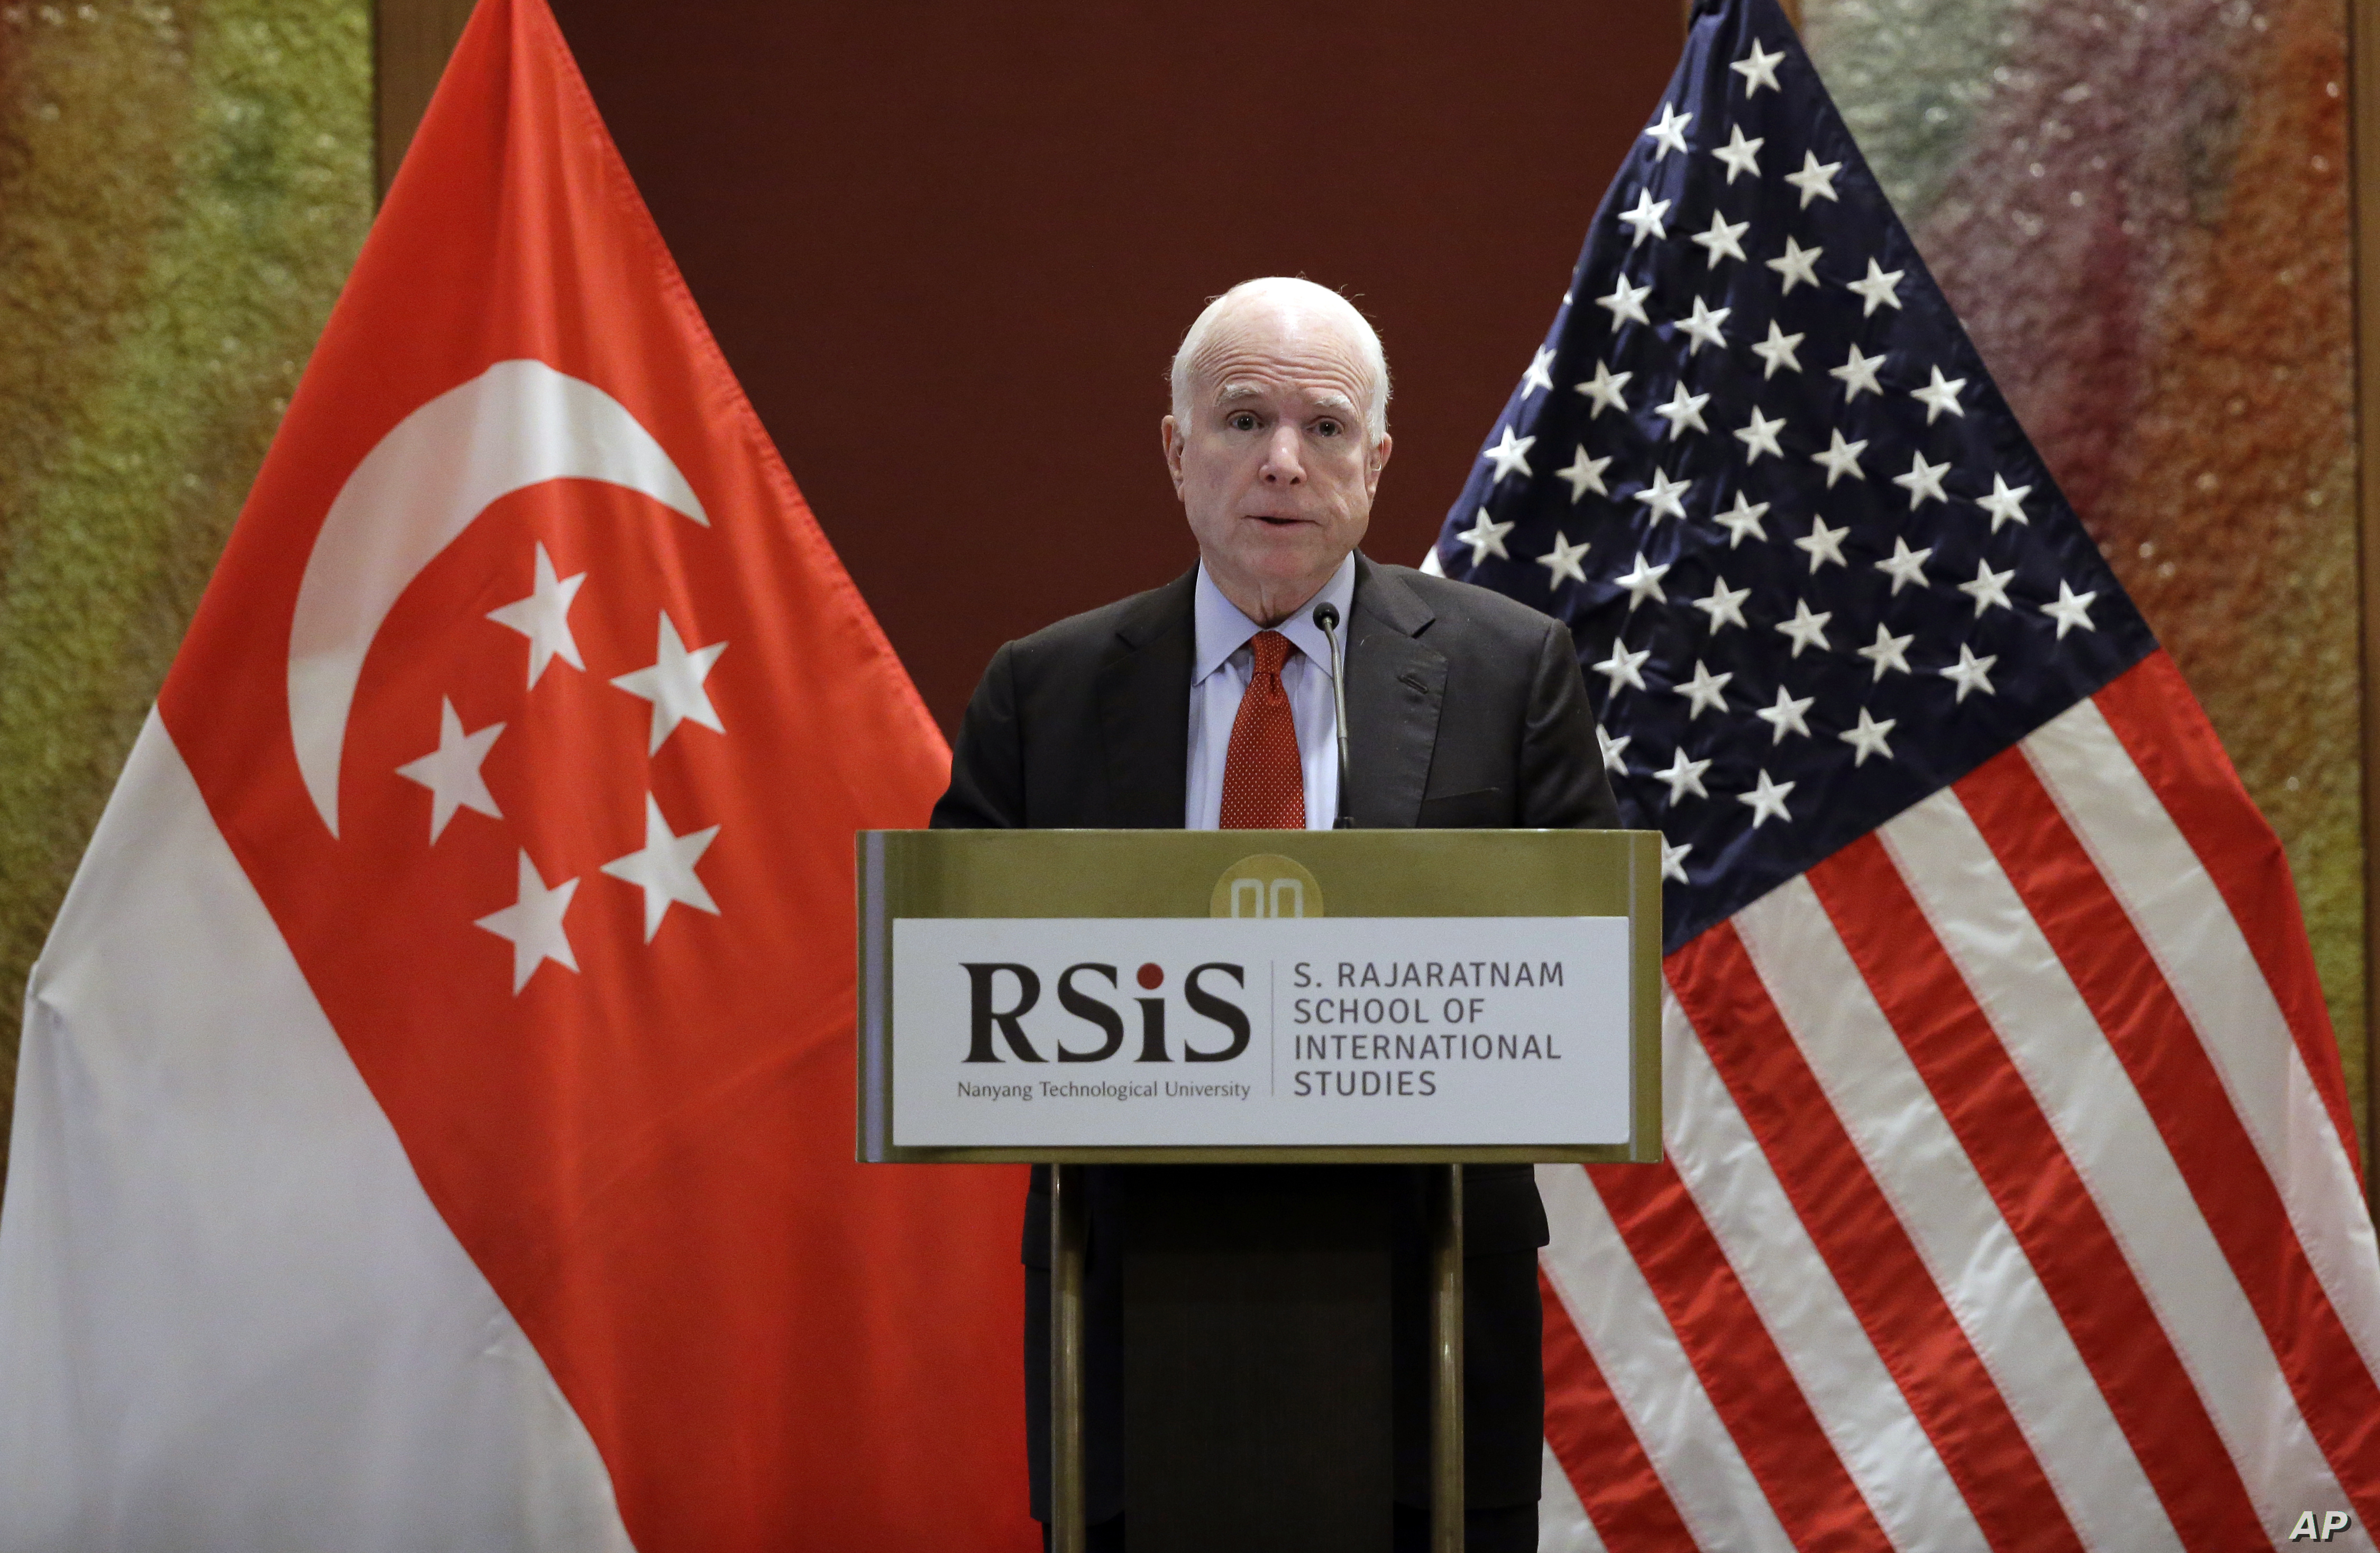 """Sen. John McCain, R-Ariz., delivers his speech titled """"America's Enduring Commitment to Security and Prosperity in Asia"""" at the S. Rajaratnam School of International Studies (RSIS) Distinguished Public Lecture Friday, June 3, 2016 in Singapore."""